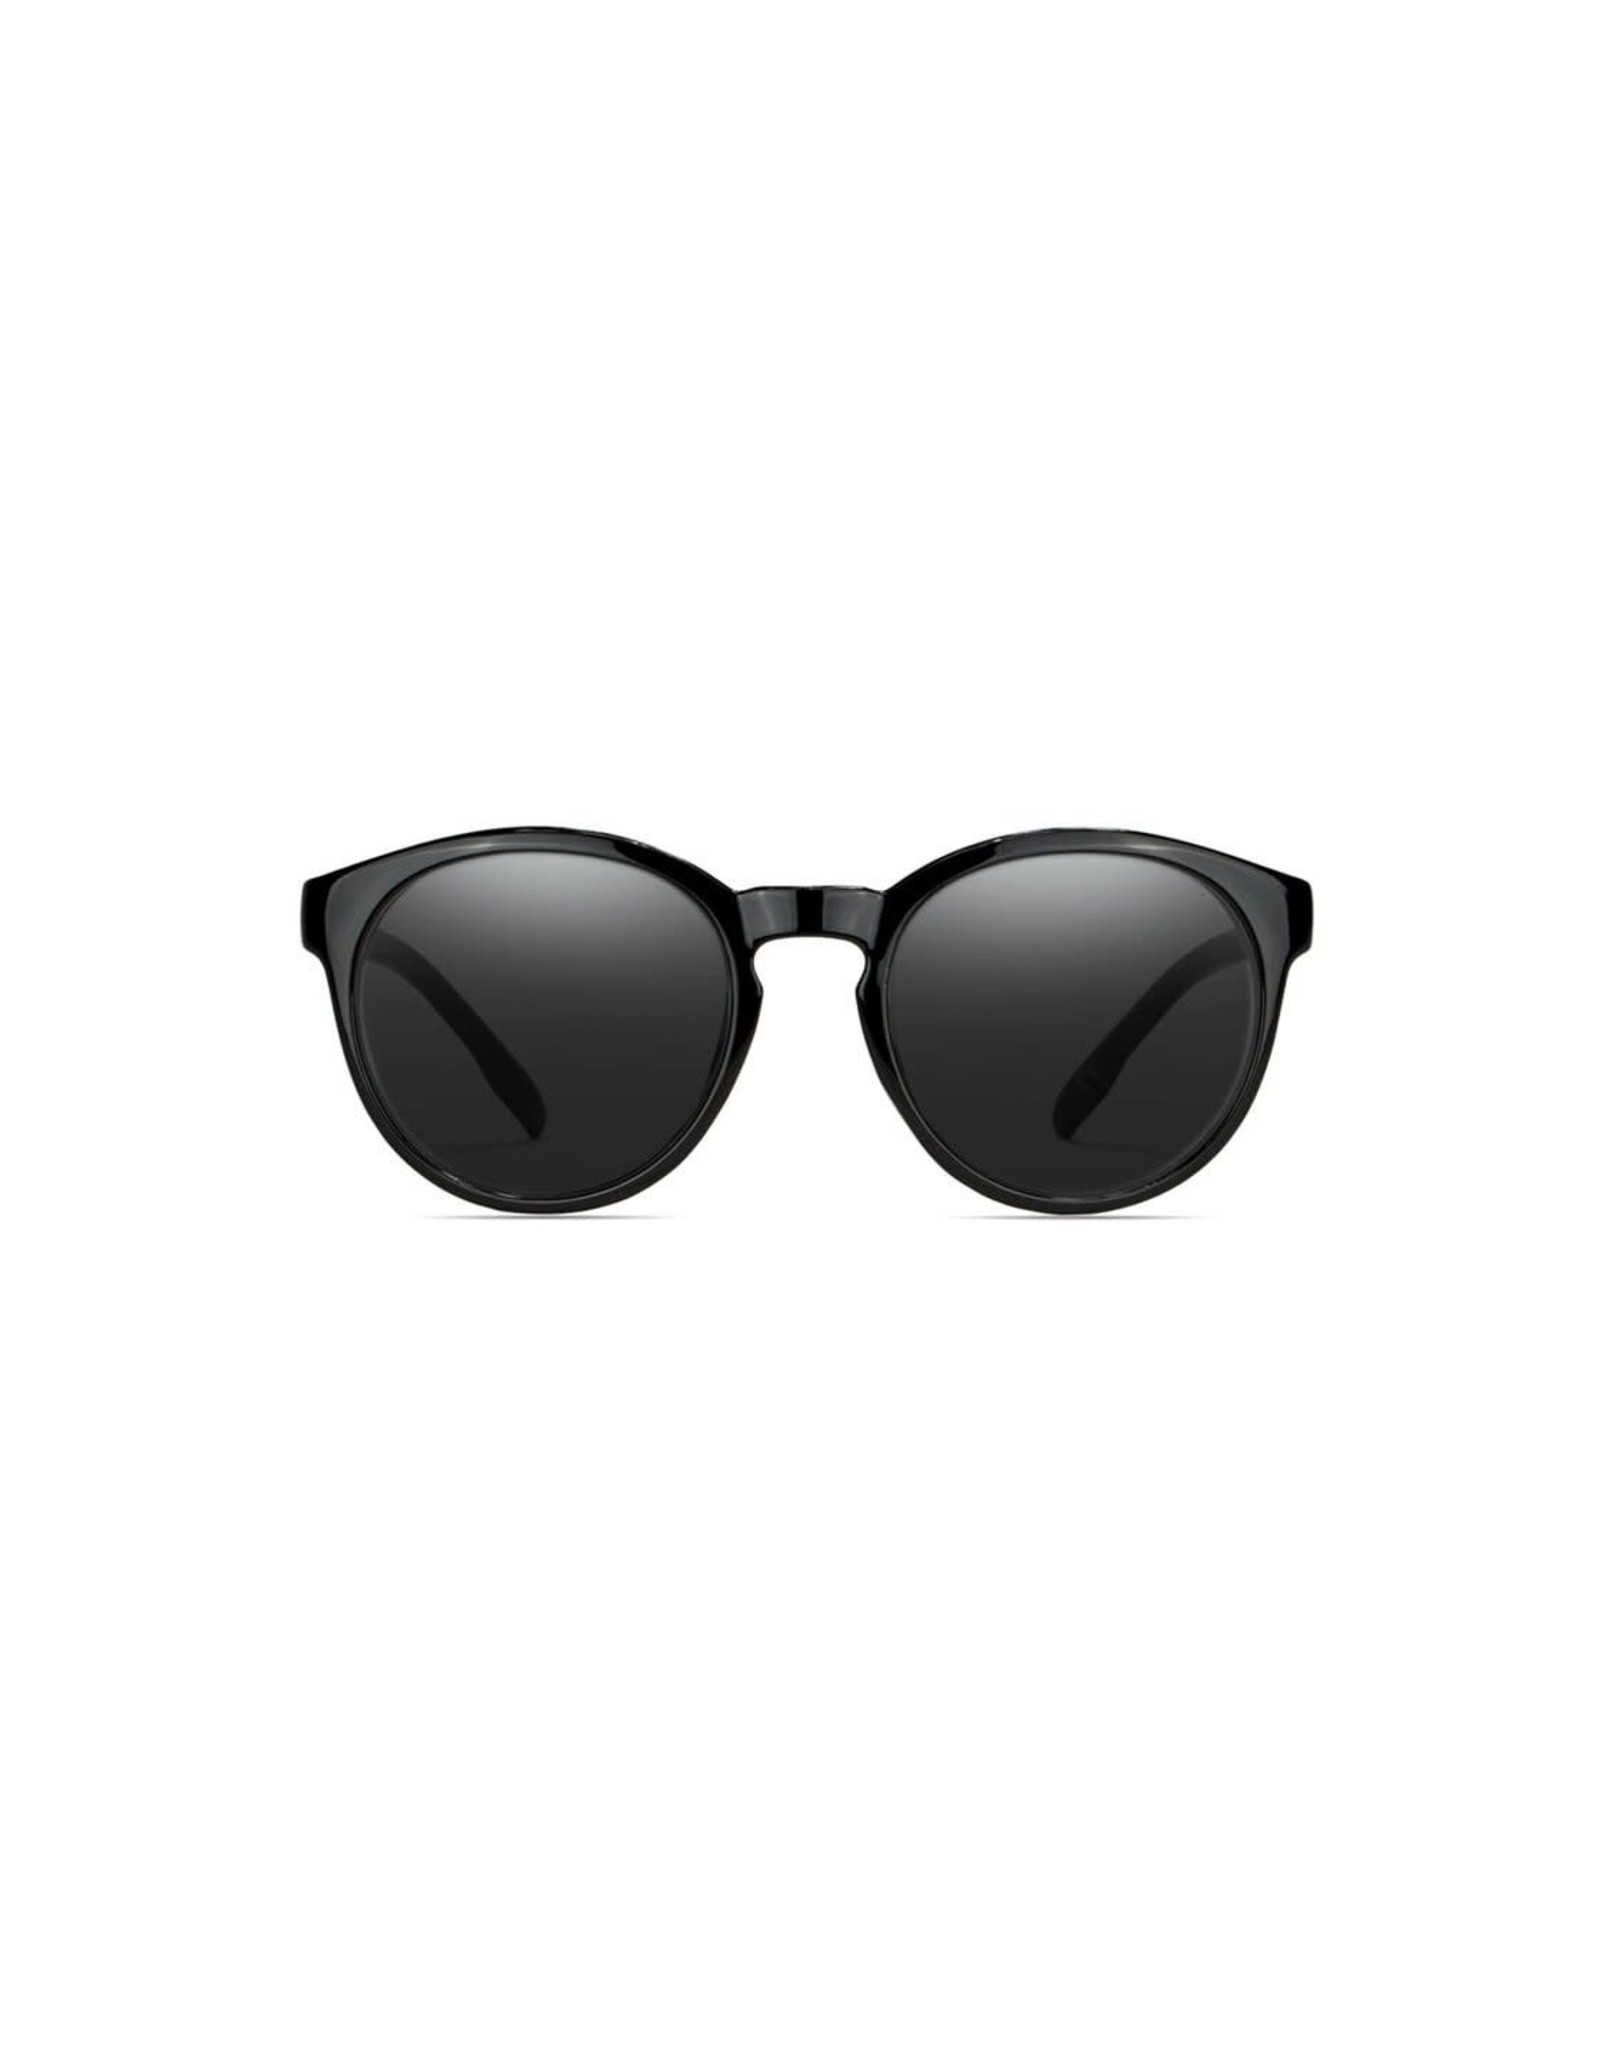 Nectar Nectar Traveller Black Black Polarized